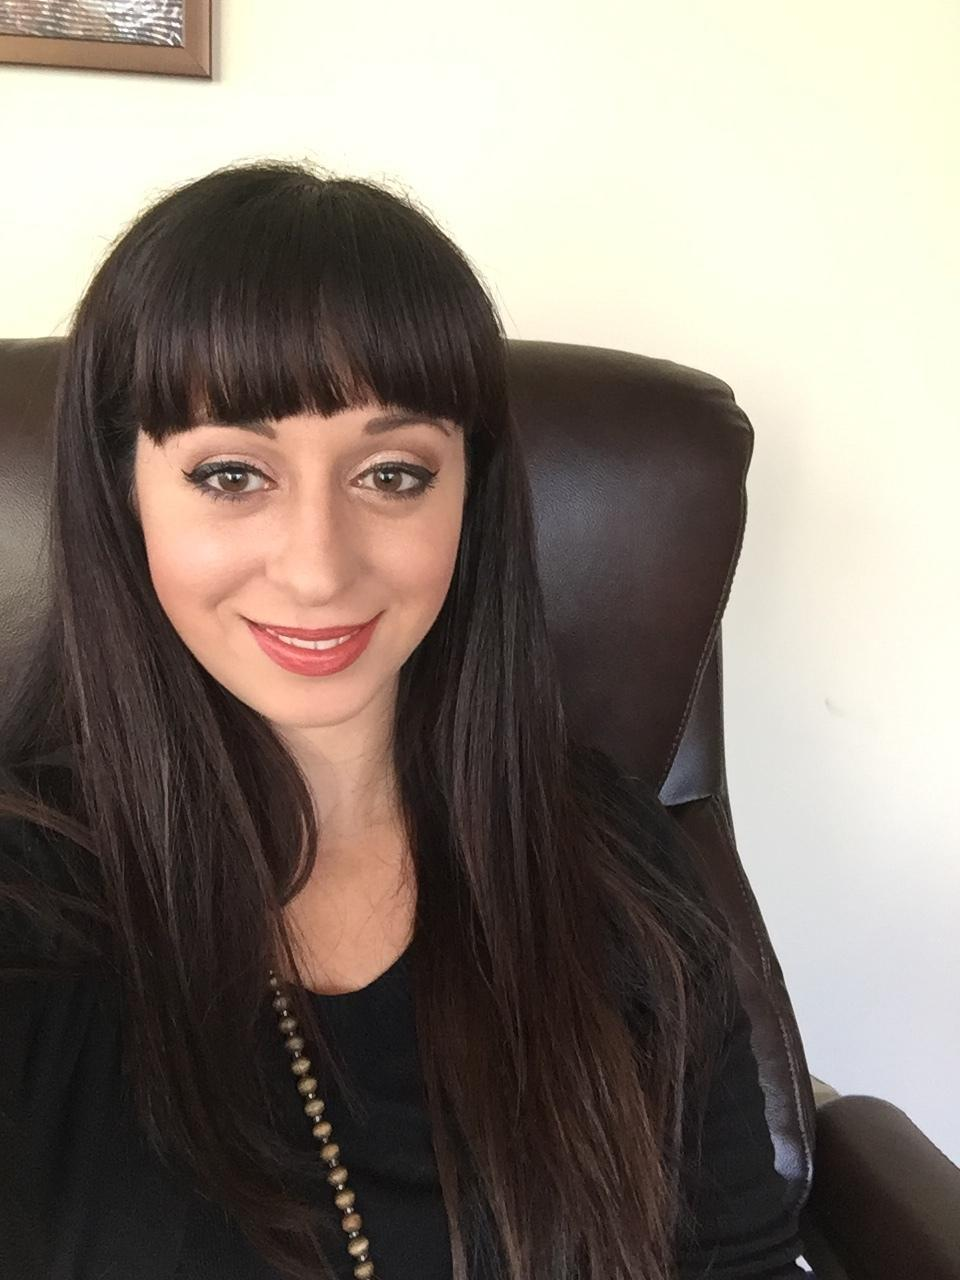 Find a Licensed Professional Counselor - Liana Gerdov